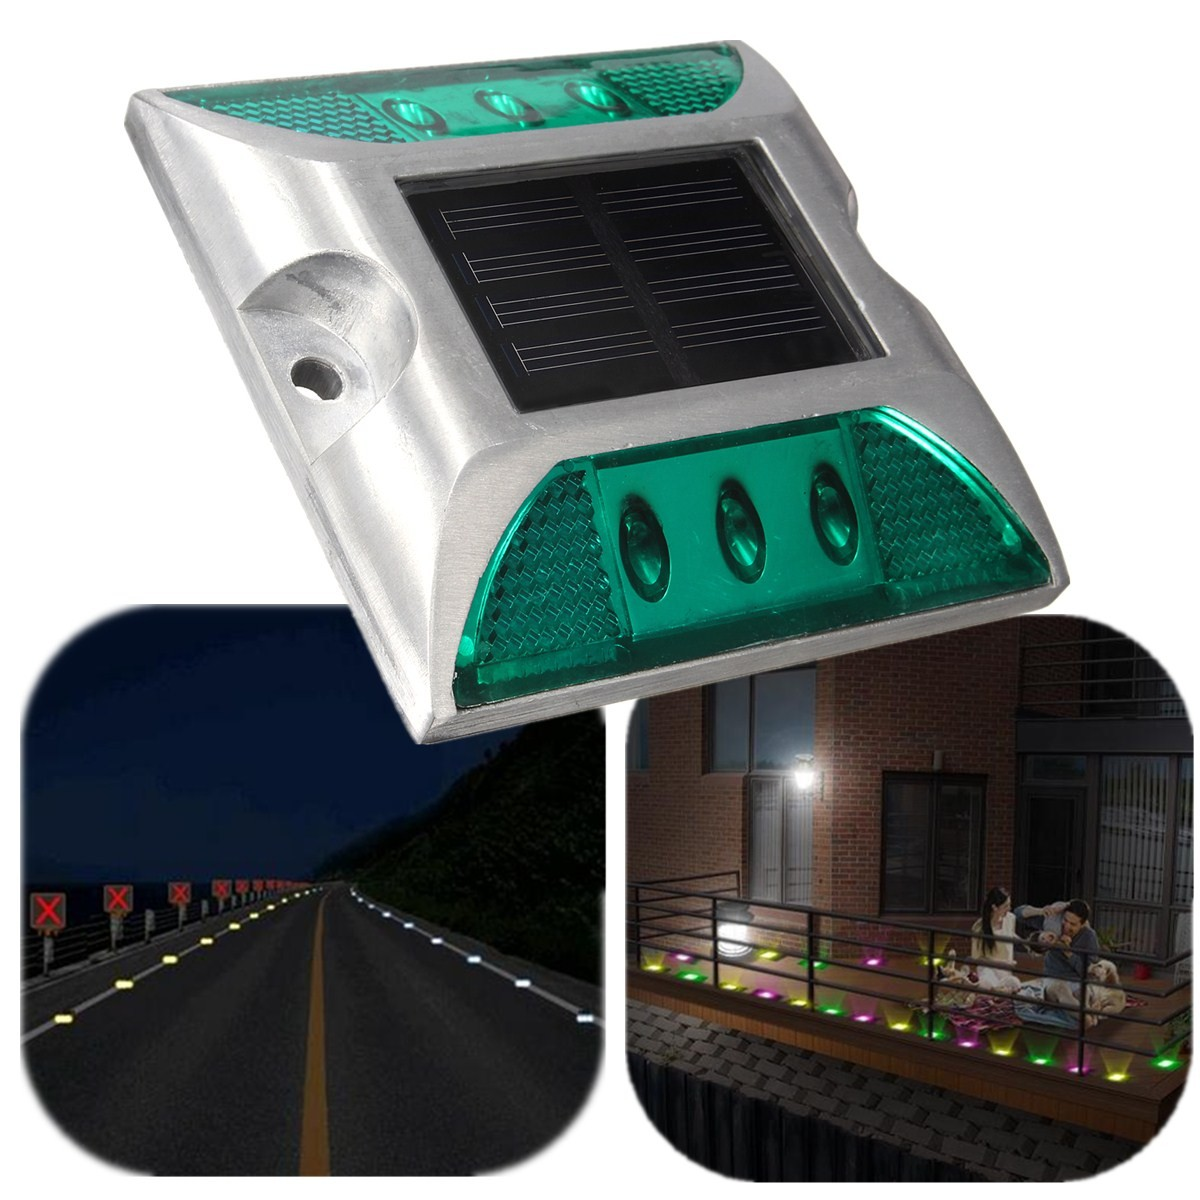 aluminium etanche 6 led solaire lampe lumiere pour maison jardin cour ext rieur ebay. Black Bedroom Furniture Sets. Home Design Ideas